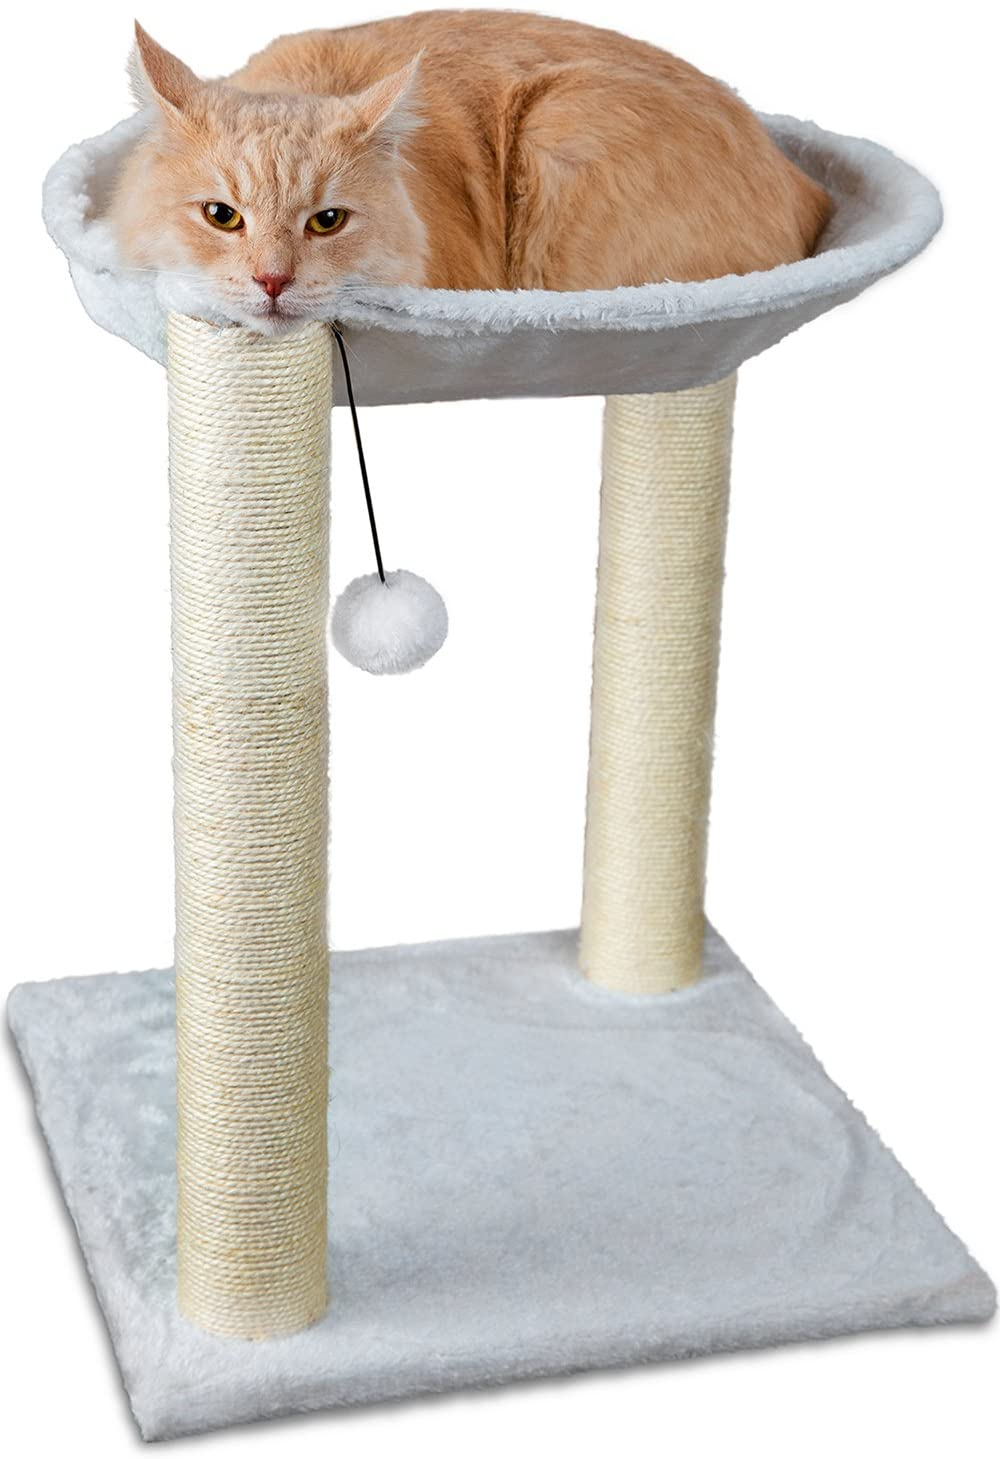 Best Cat Trees With Beds for Large Cats